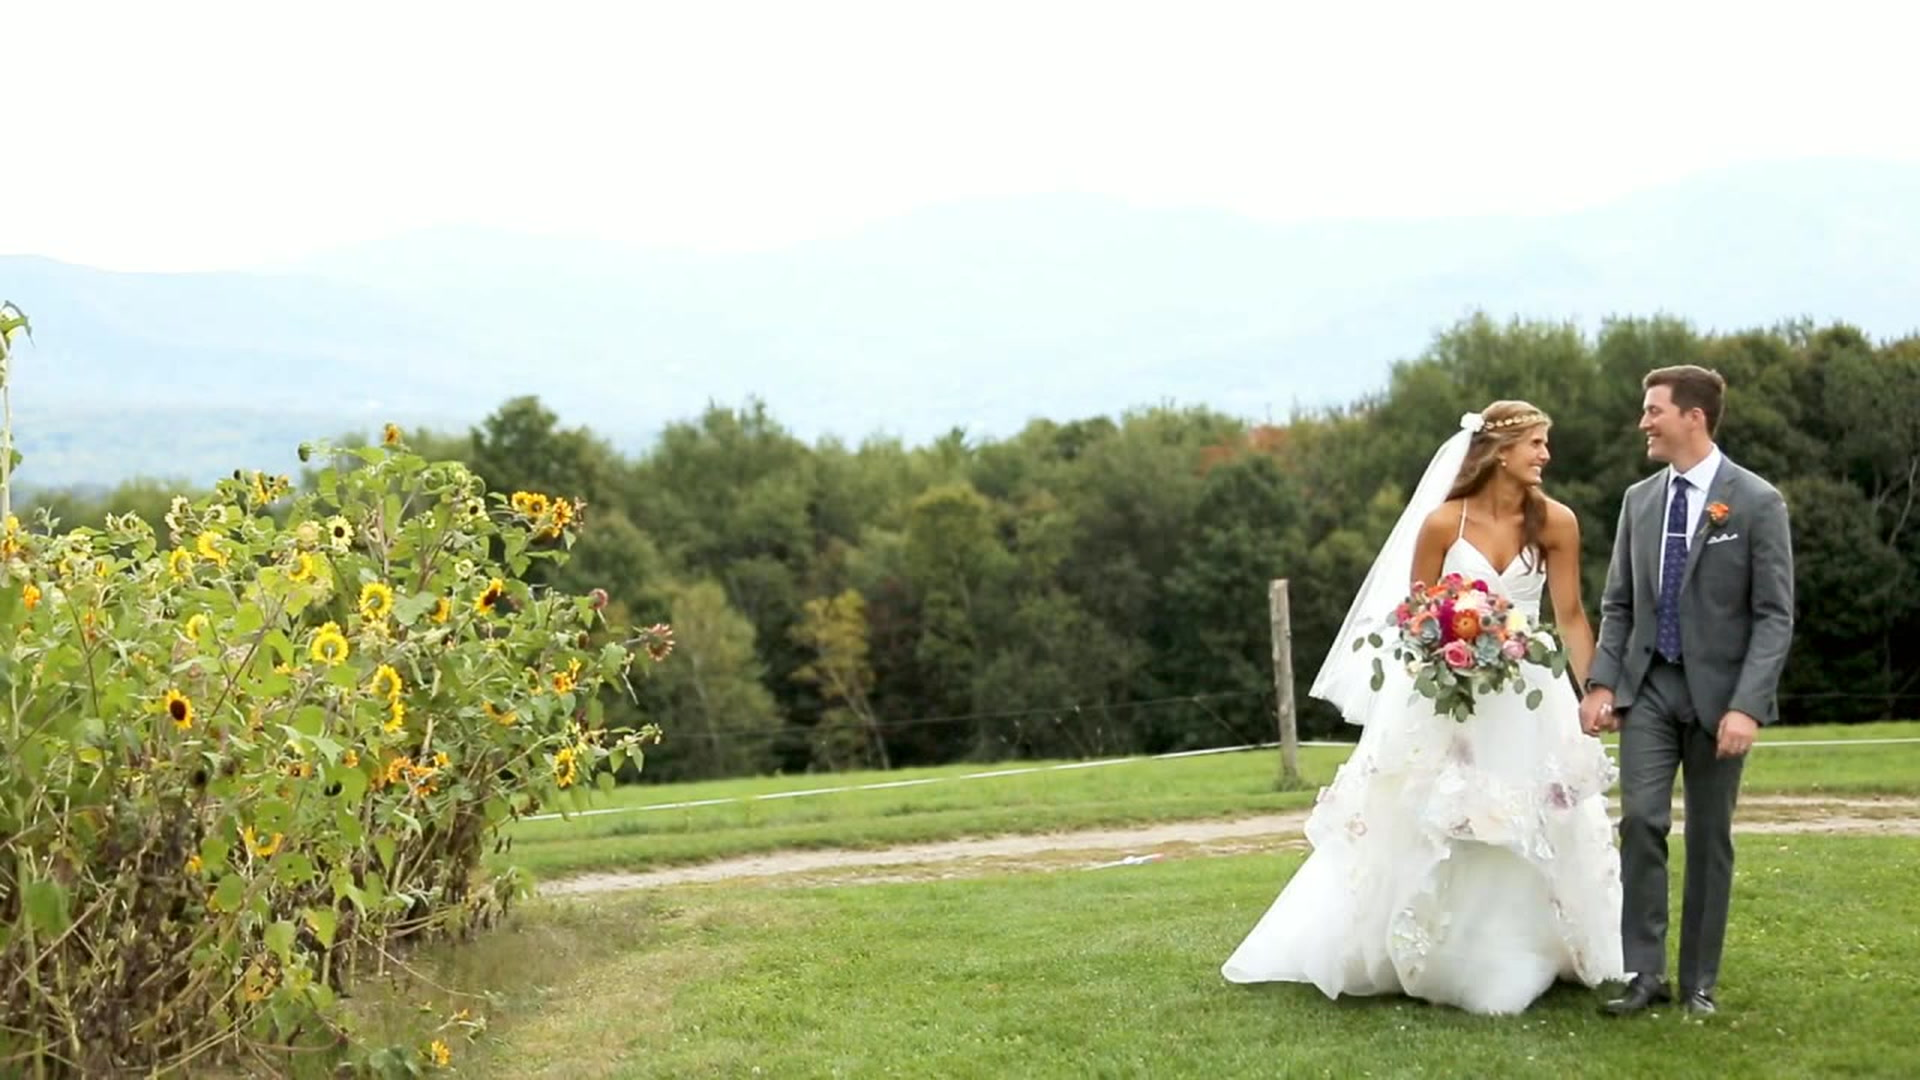 Madeline + Chris | Stowe, Vermont | Trapp Family Lodge